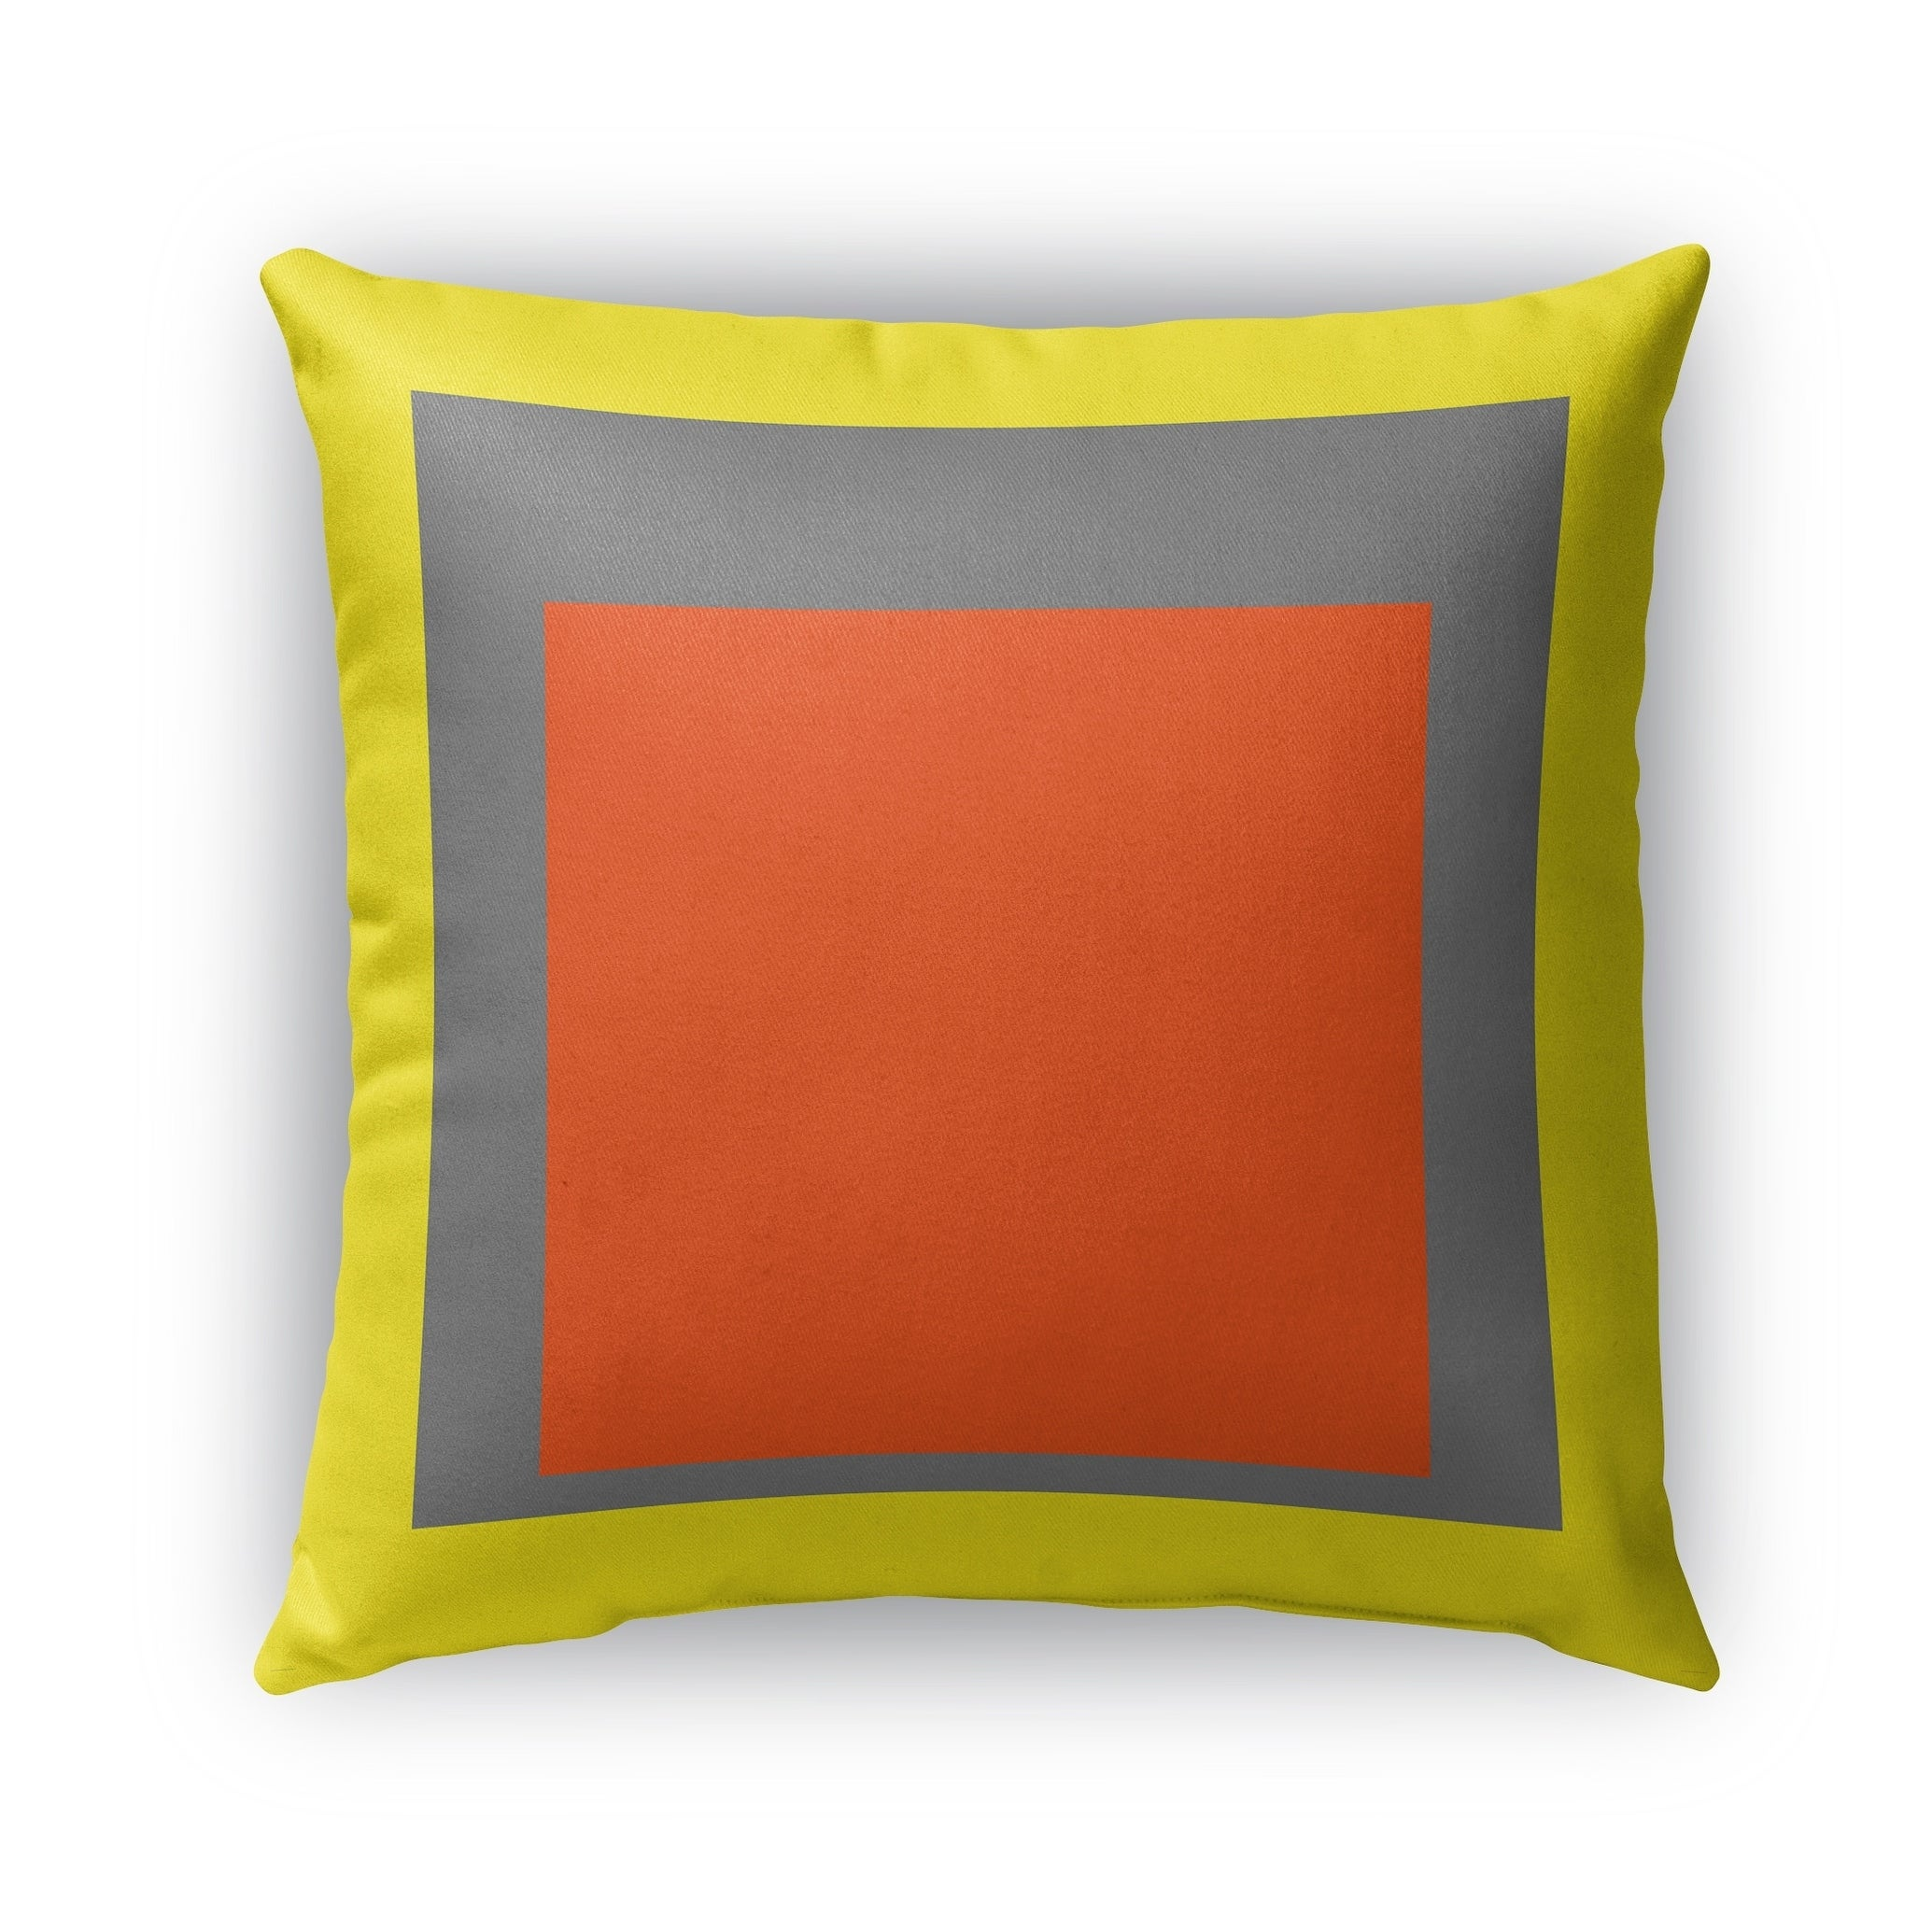 Kavka Designs yellow; grey; orange color theory blocks outdoor pillow with insert (26 x 26)